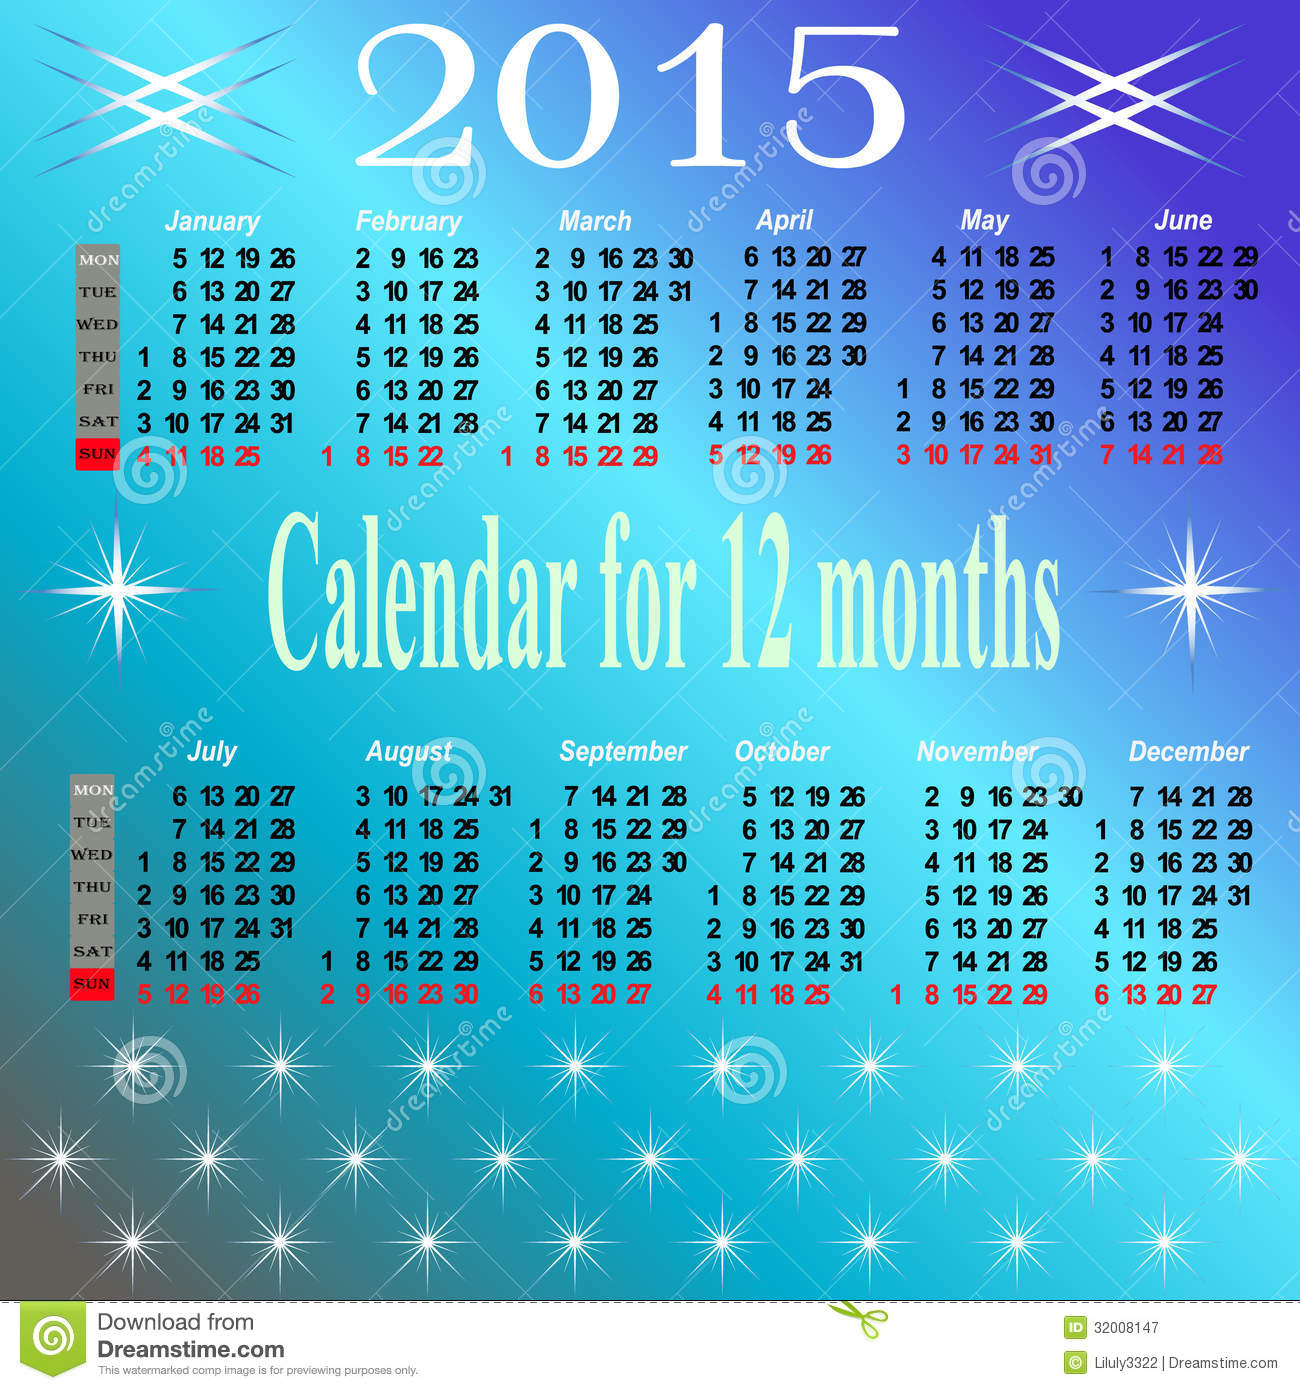 Event Calendar For Organization : Calendar for year royalty free stock photography